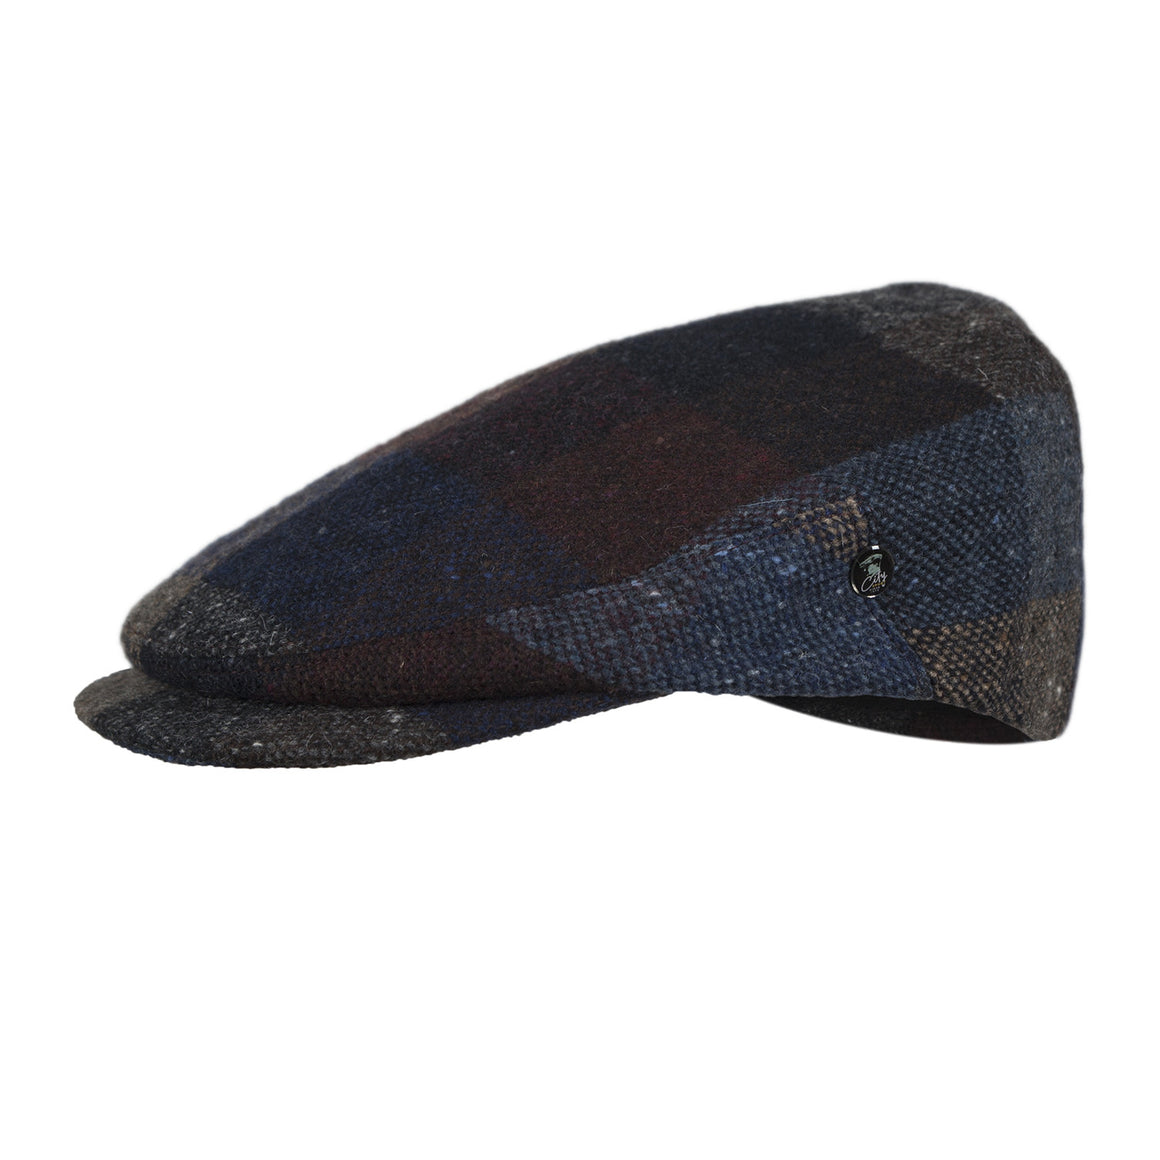 Multicolour Tweed Flat Cap | Navy Olive | buy now at The Cashmere Choice London